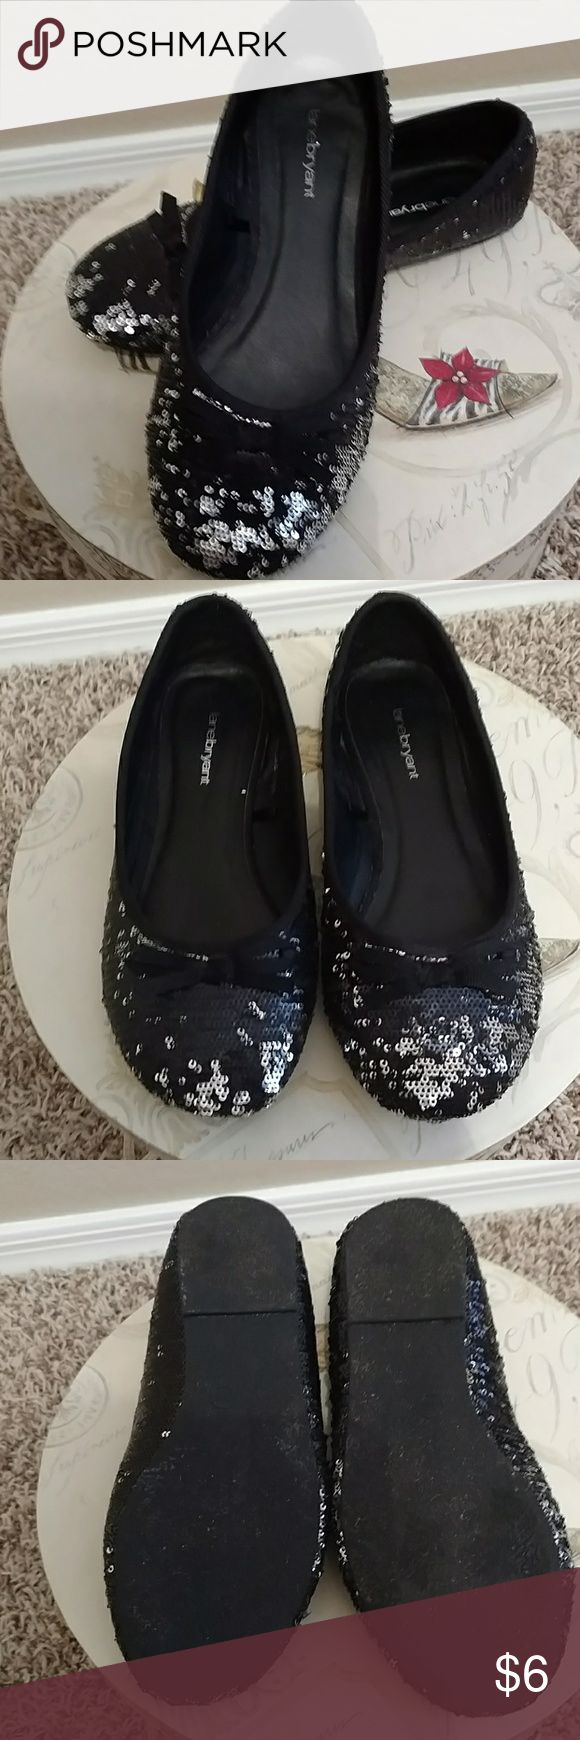 Lane Bryant 8W black/silver sequin flats Black and silver sequin ballet flats. One direction is the black and you move the other direction silver. 8W, only worn a few times, not quite the right fit for me. Lane Bryant Shoes Flats & Loafers